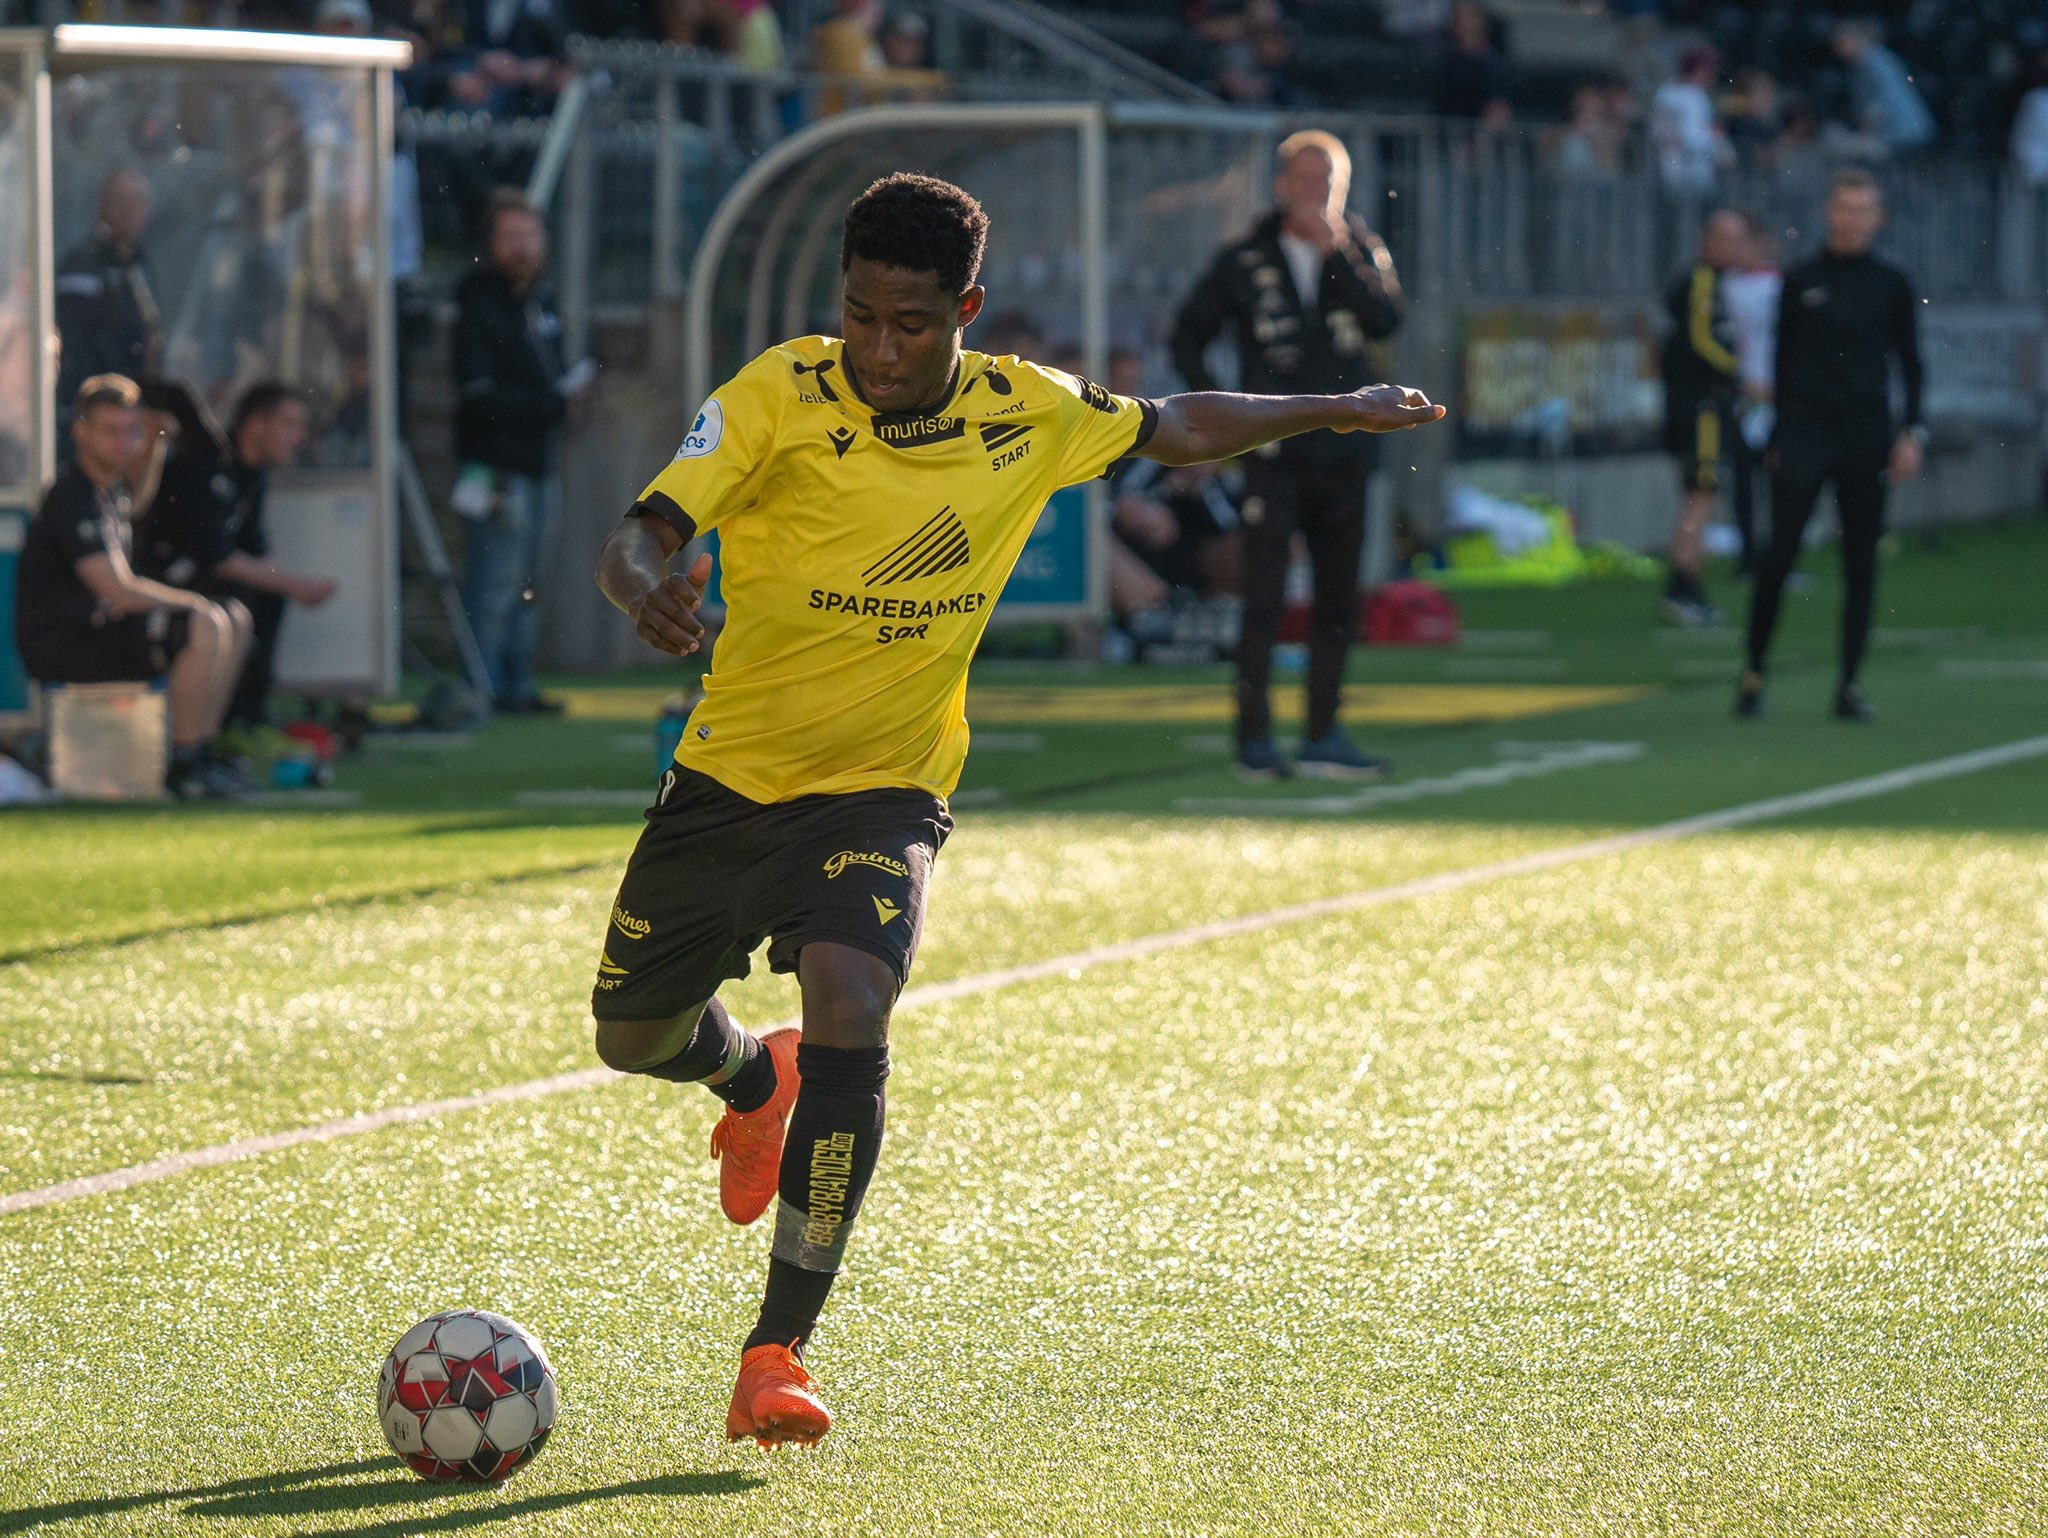 NORWAY – Isaac Twum plays full time in Starts defeat